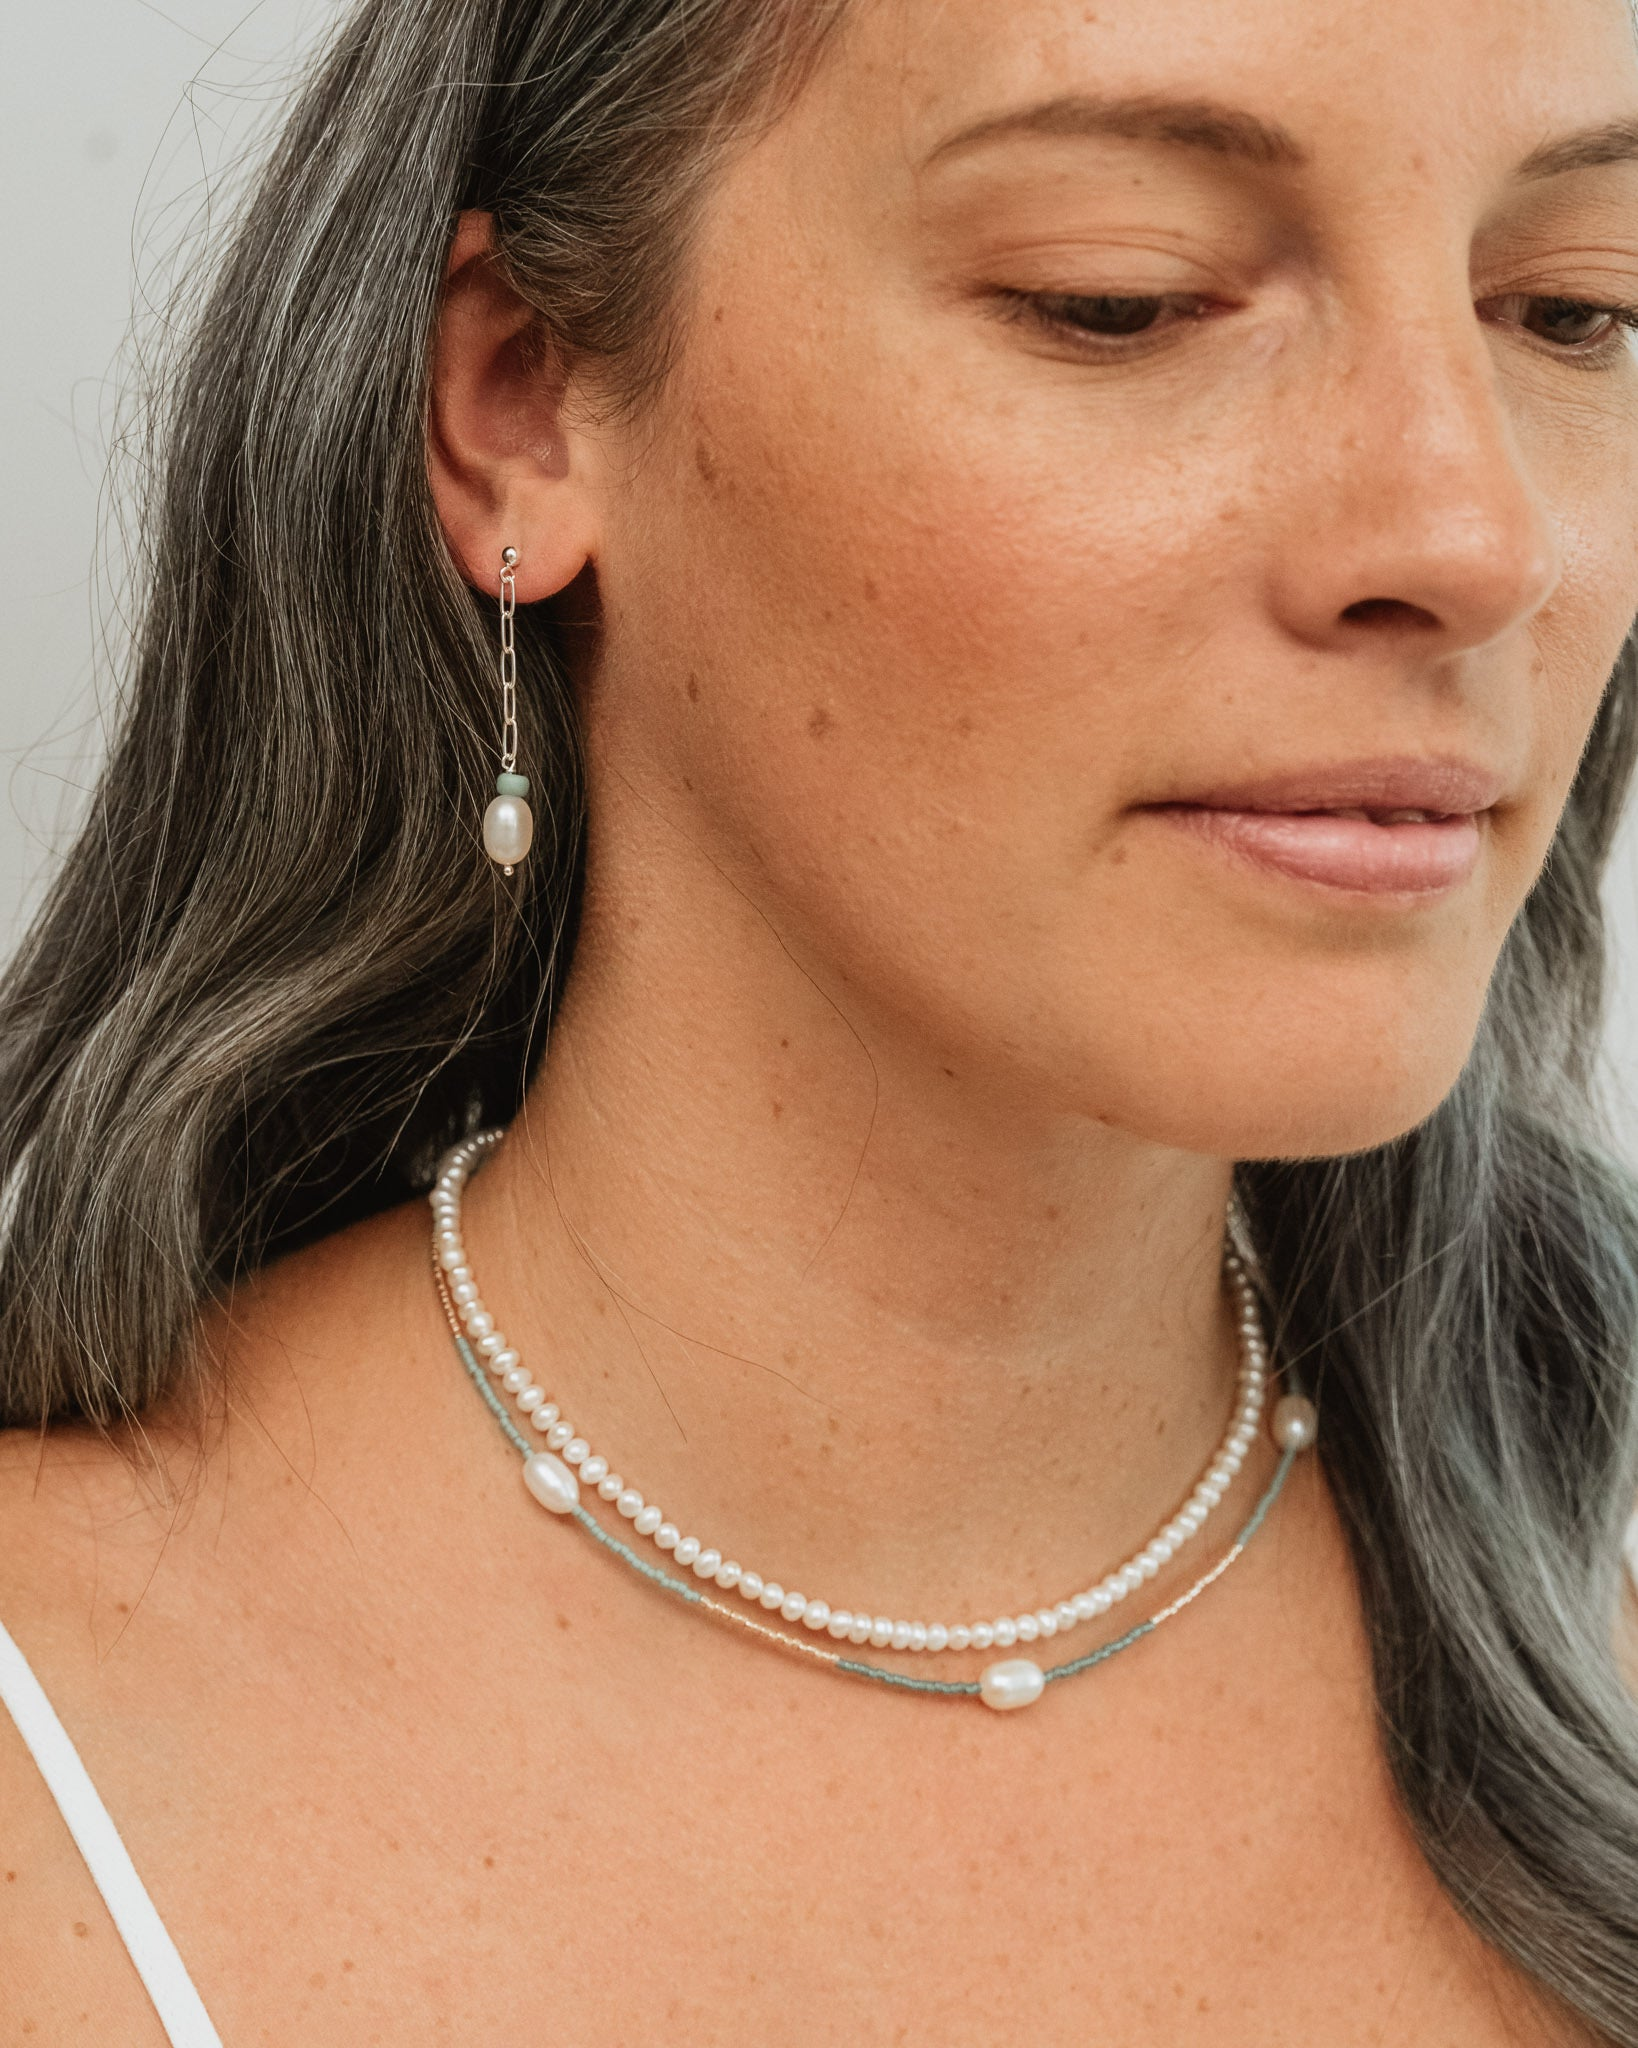 woman wearing pearl string necklace and beaded pearl necklace